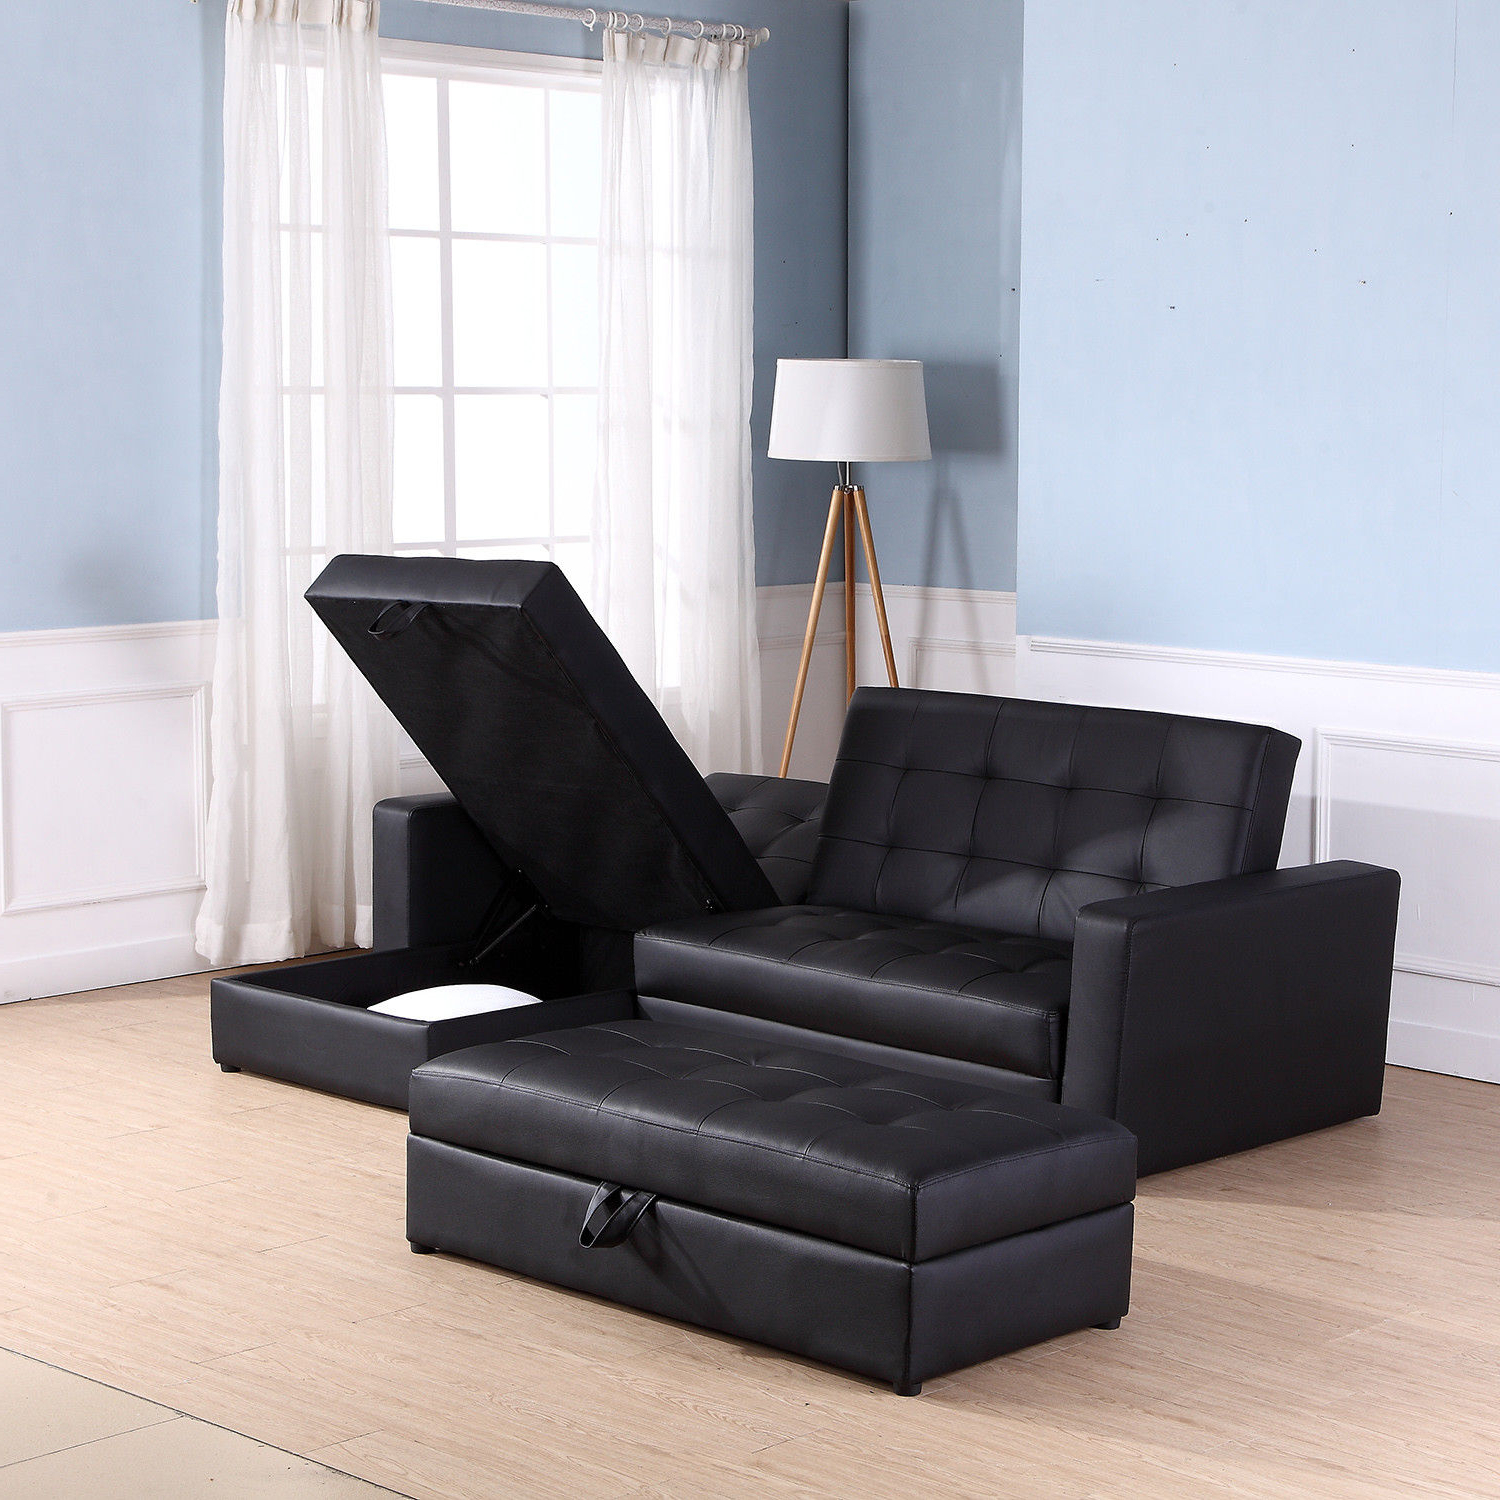 Sofa Bed Storage Sleeper Chaise Loveseat Couch Sectional With Best And Newest Live It Cozy Sectional Sofa Beds With Storage (View 13 of 25)